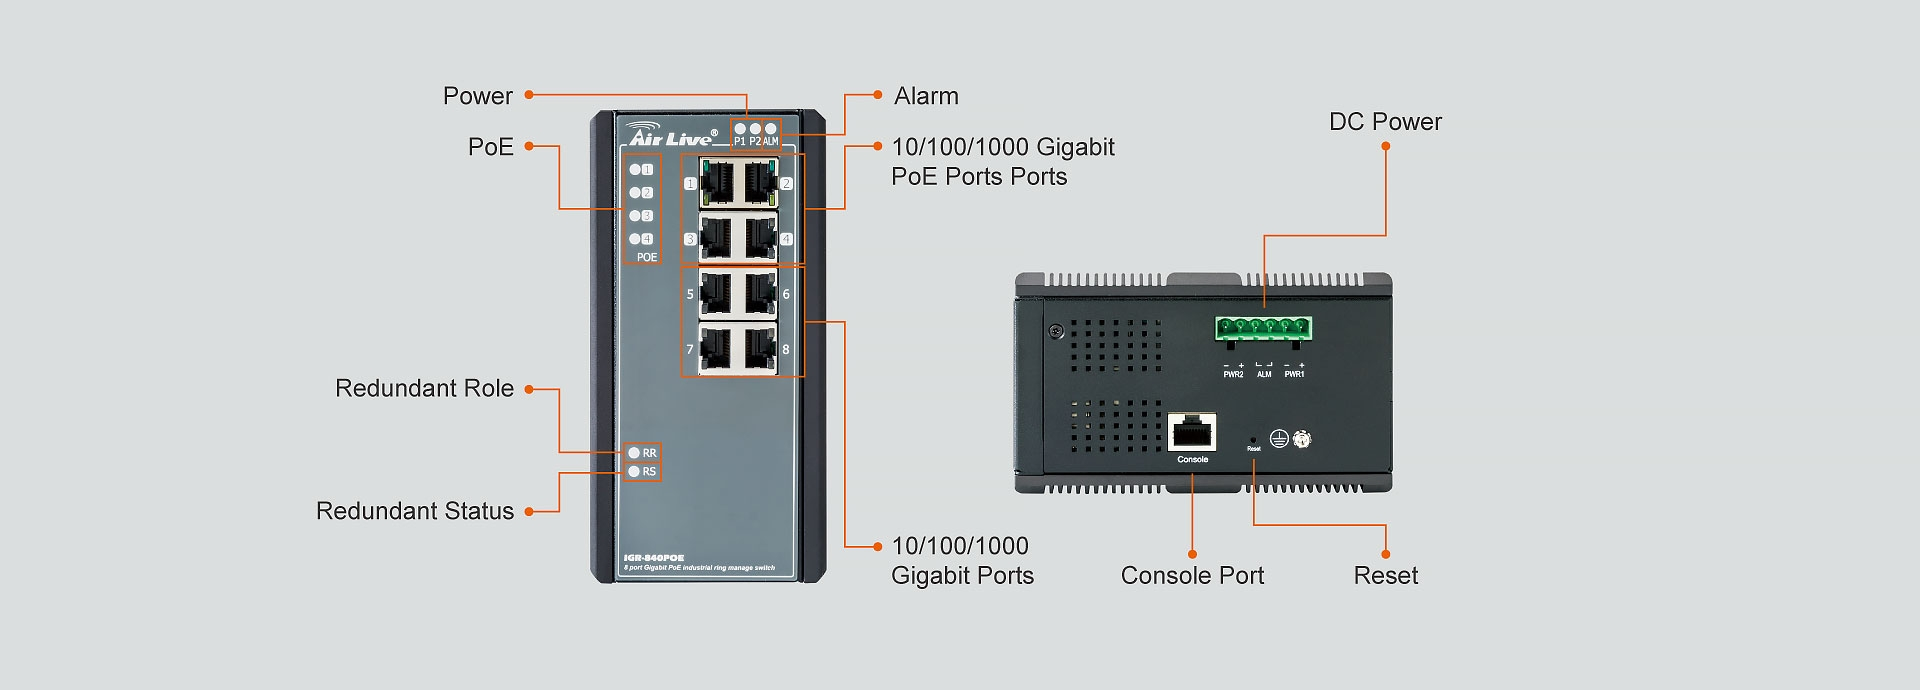 Reliable and Industrial-grade POE Switch